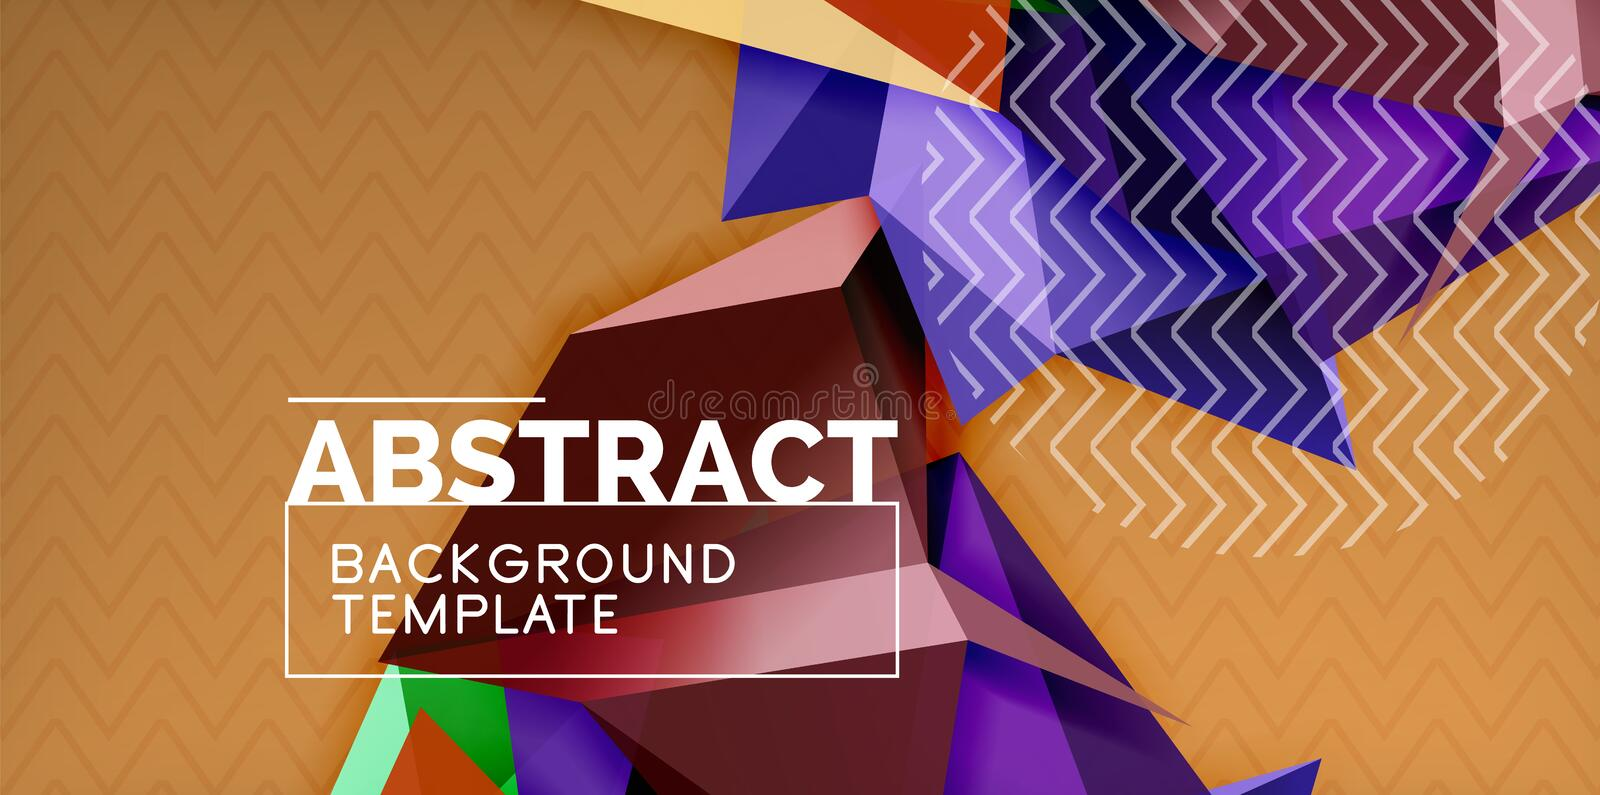 Vector triangular 3d geometric shapes background, modern poster design stock illustration